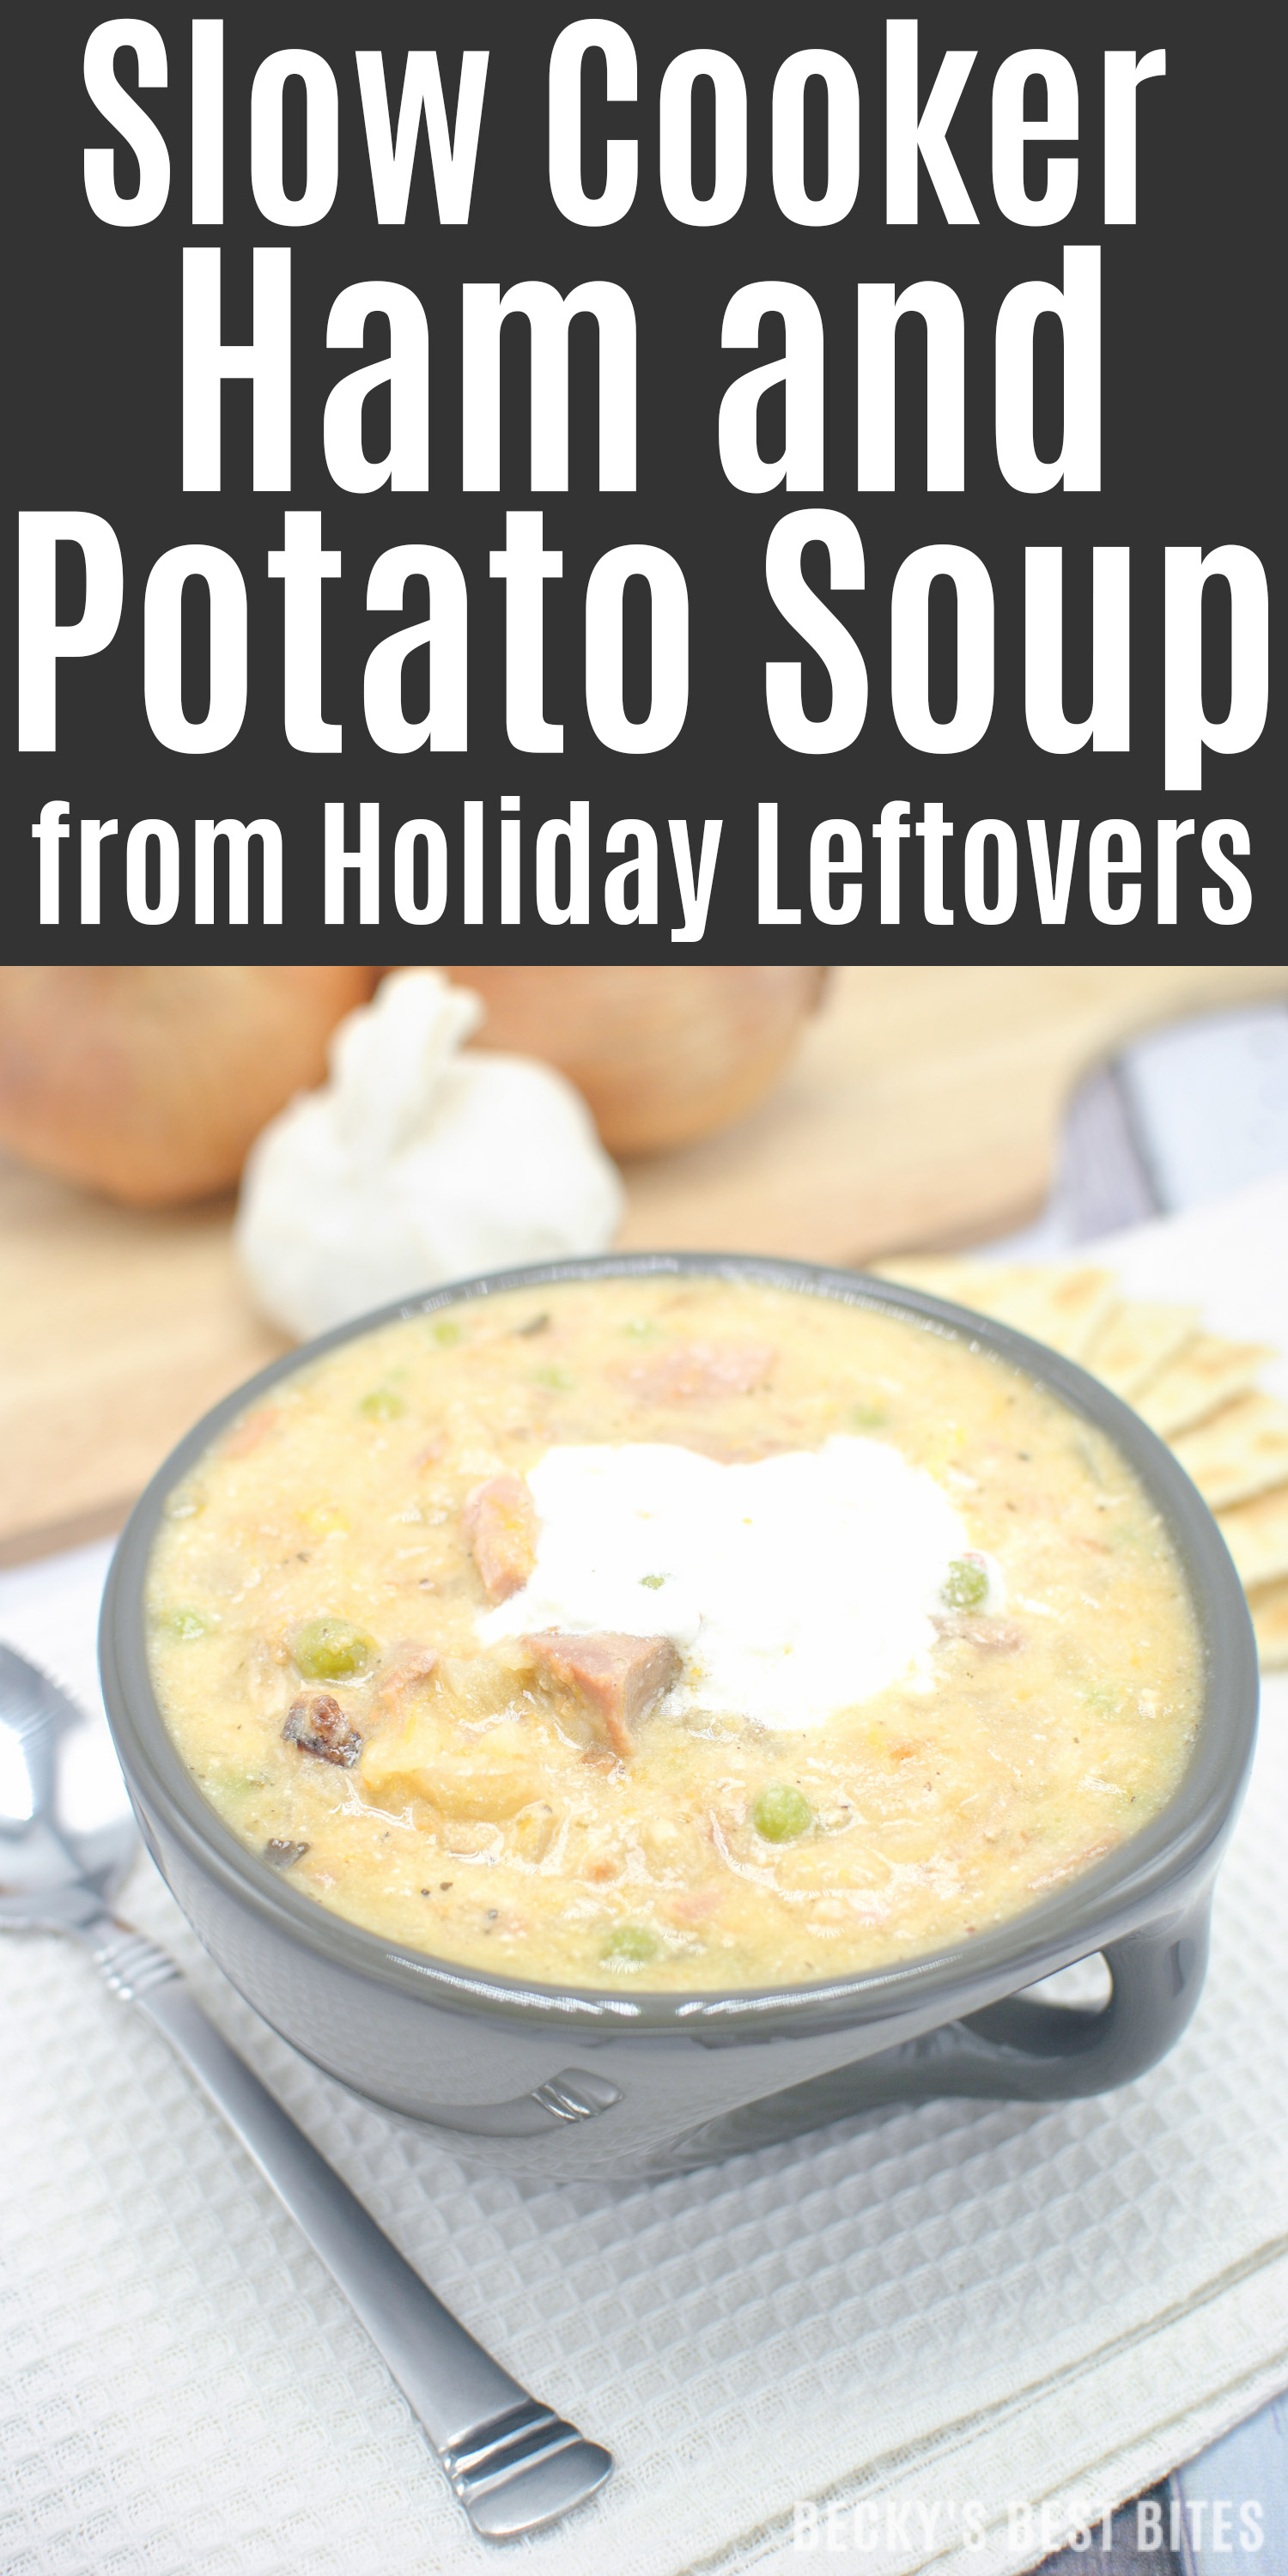 Slow Cooker Ham and Potato Soup is a quick, easy and yummy recipe way to use up those holiday leftovers! Reinvent the remaining, uneaten food into a comforting soup to warm you up on a chilly, winter night. | beckysbestbites.com